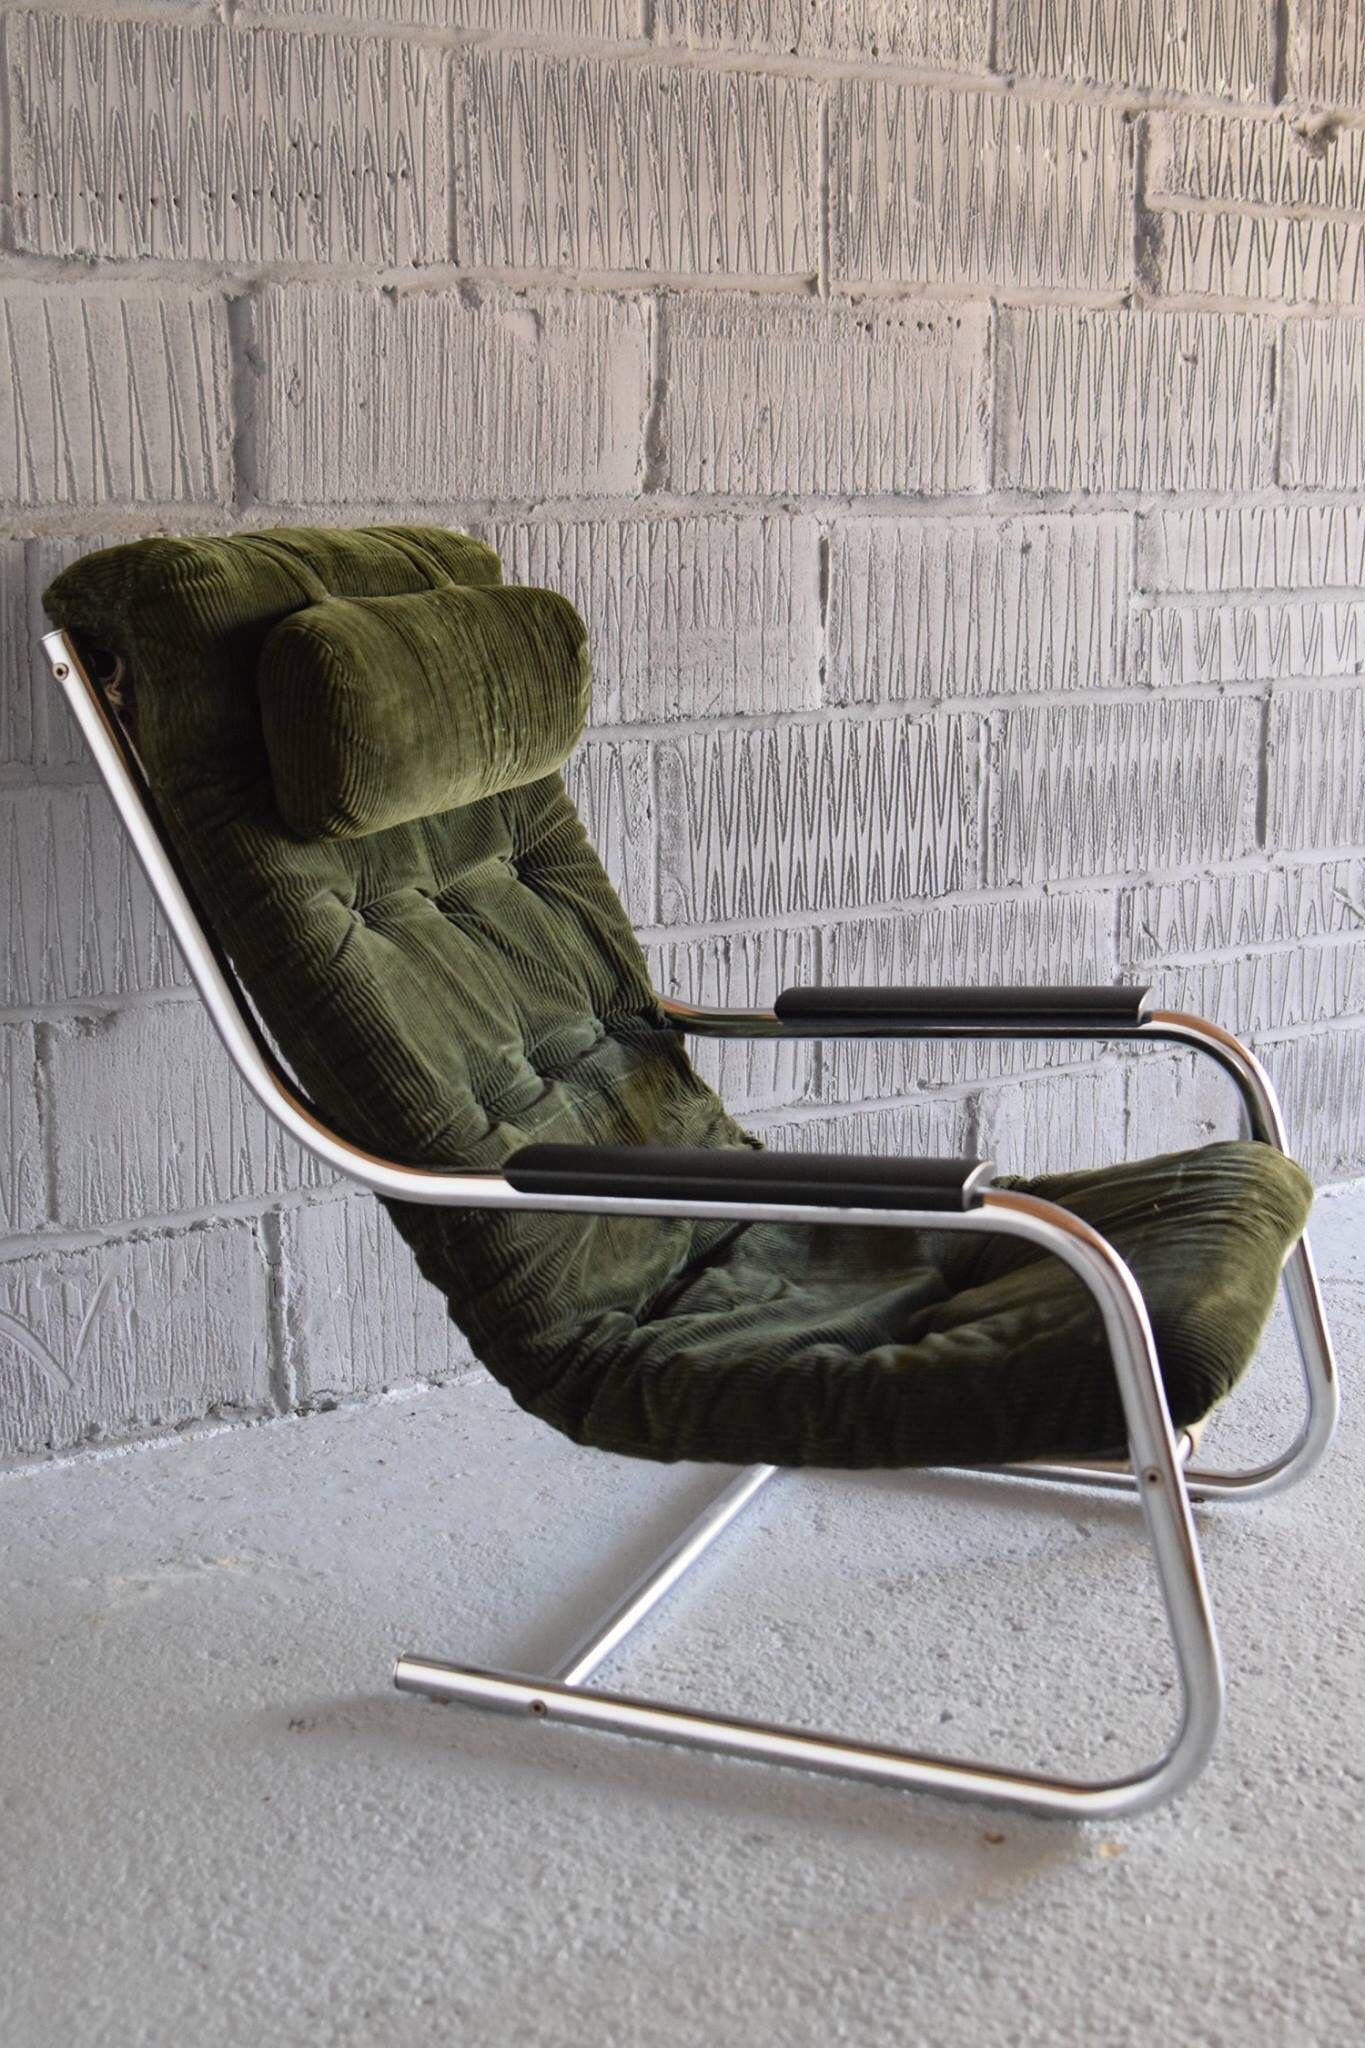 Peachy Vintage Modernist 80S Cantilevered Slingback Chair Bauhaus Gmtry Best Dining Table And Chair Ideas Images Gmtryco